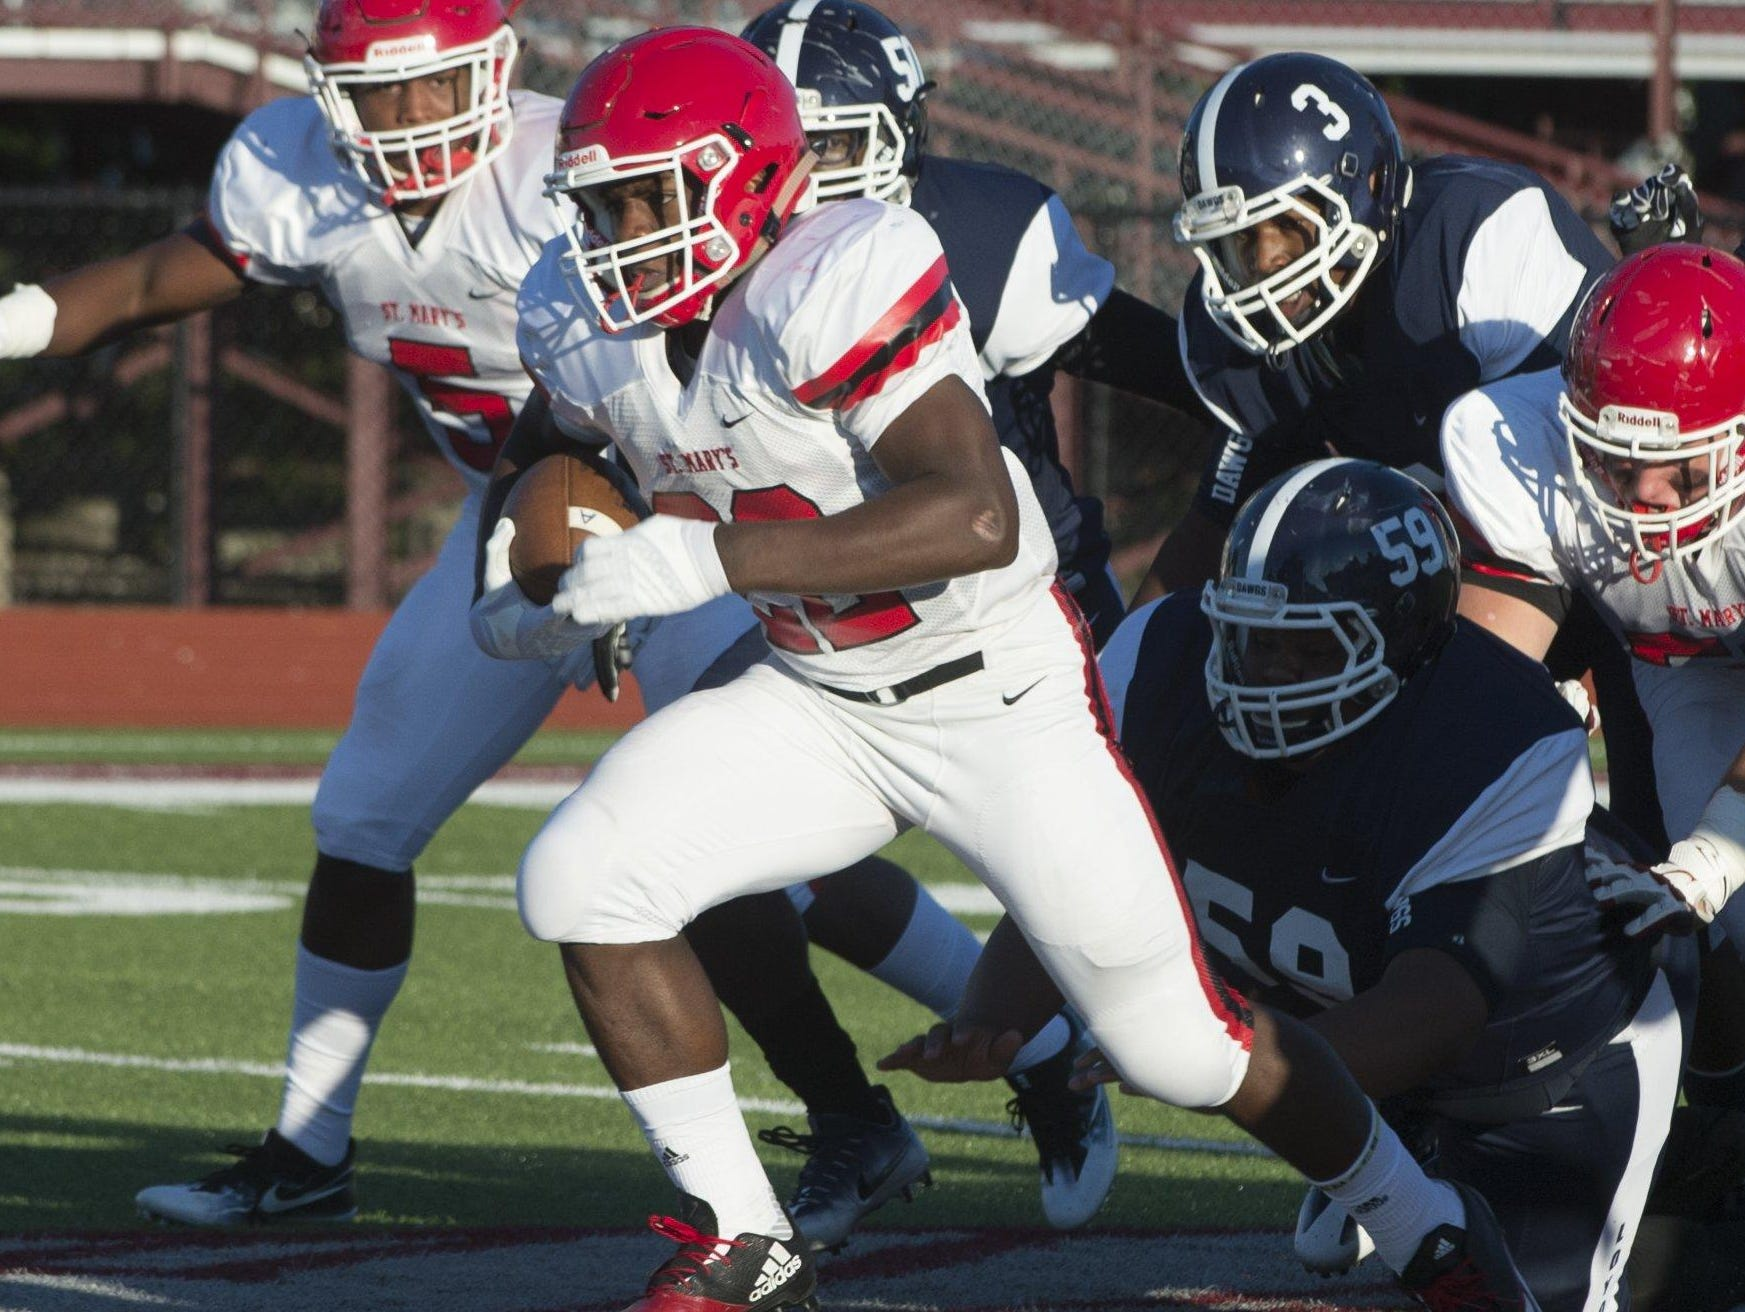 Orchard Lake St. Mary's junior running back RaShawn Allen breaks through the line for a 56-yard touchdown run against Detroit Loyola at Hazel Park on Sept. 2.